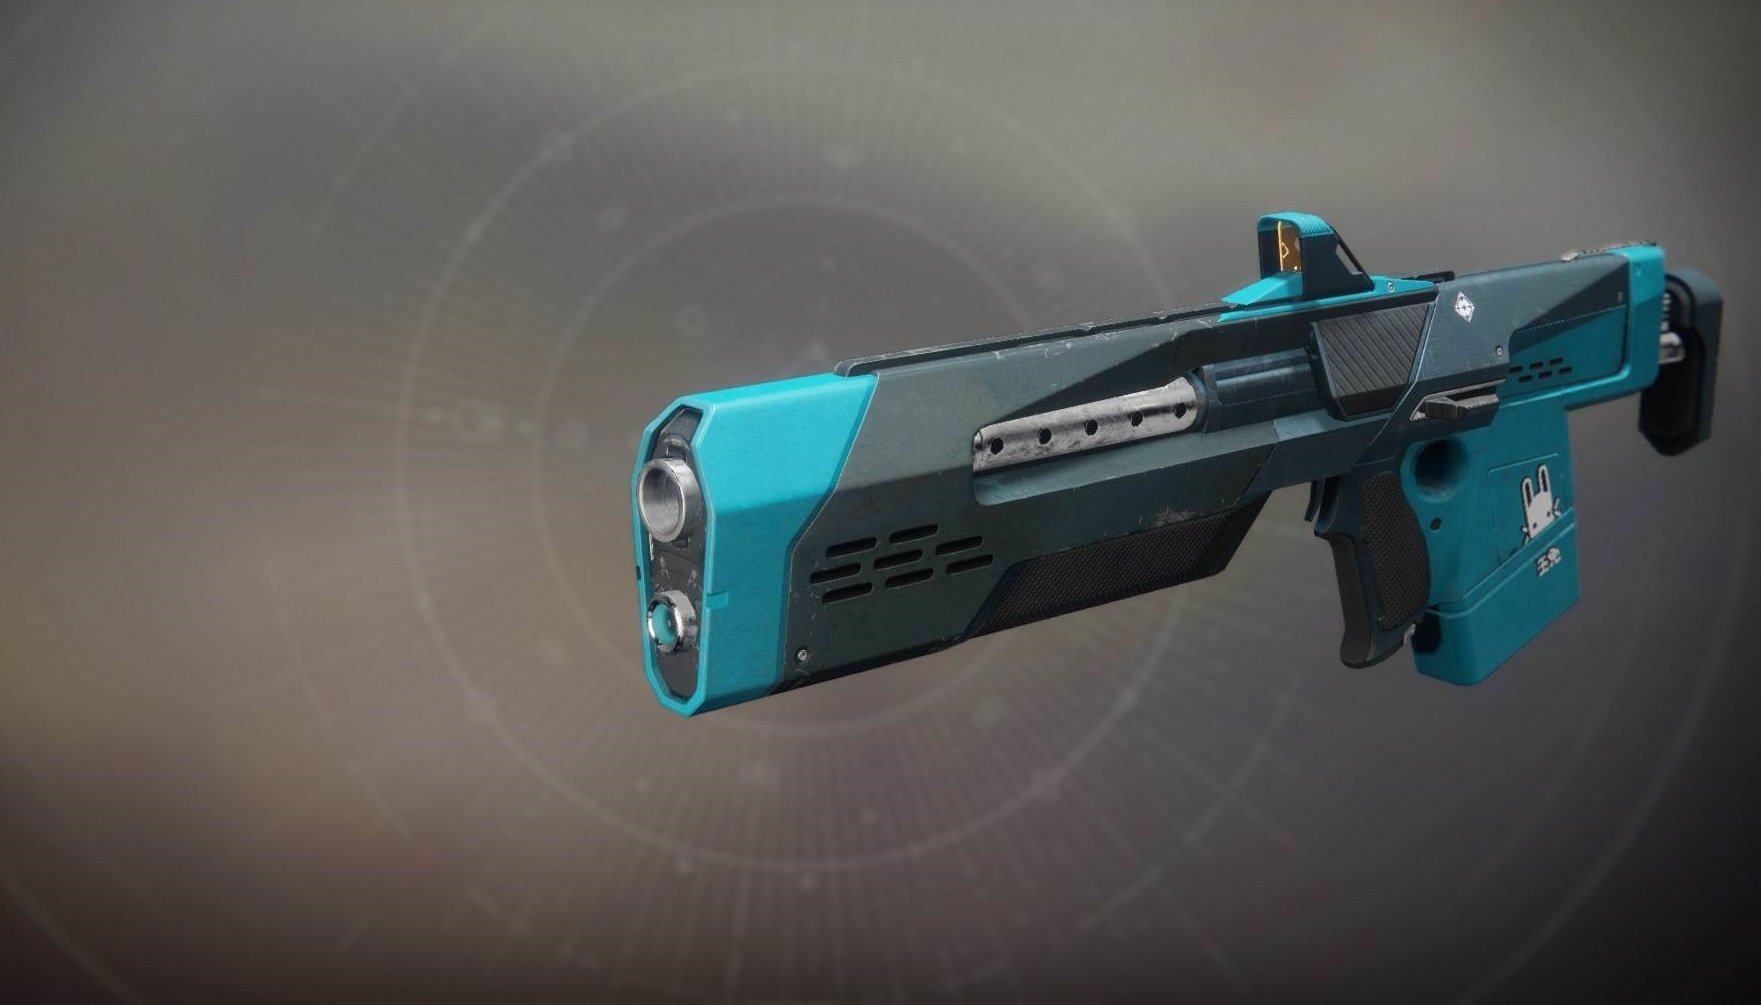 What Xur is selling in Destiny 2 - April 10, 2020